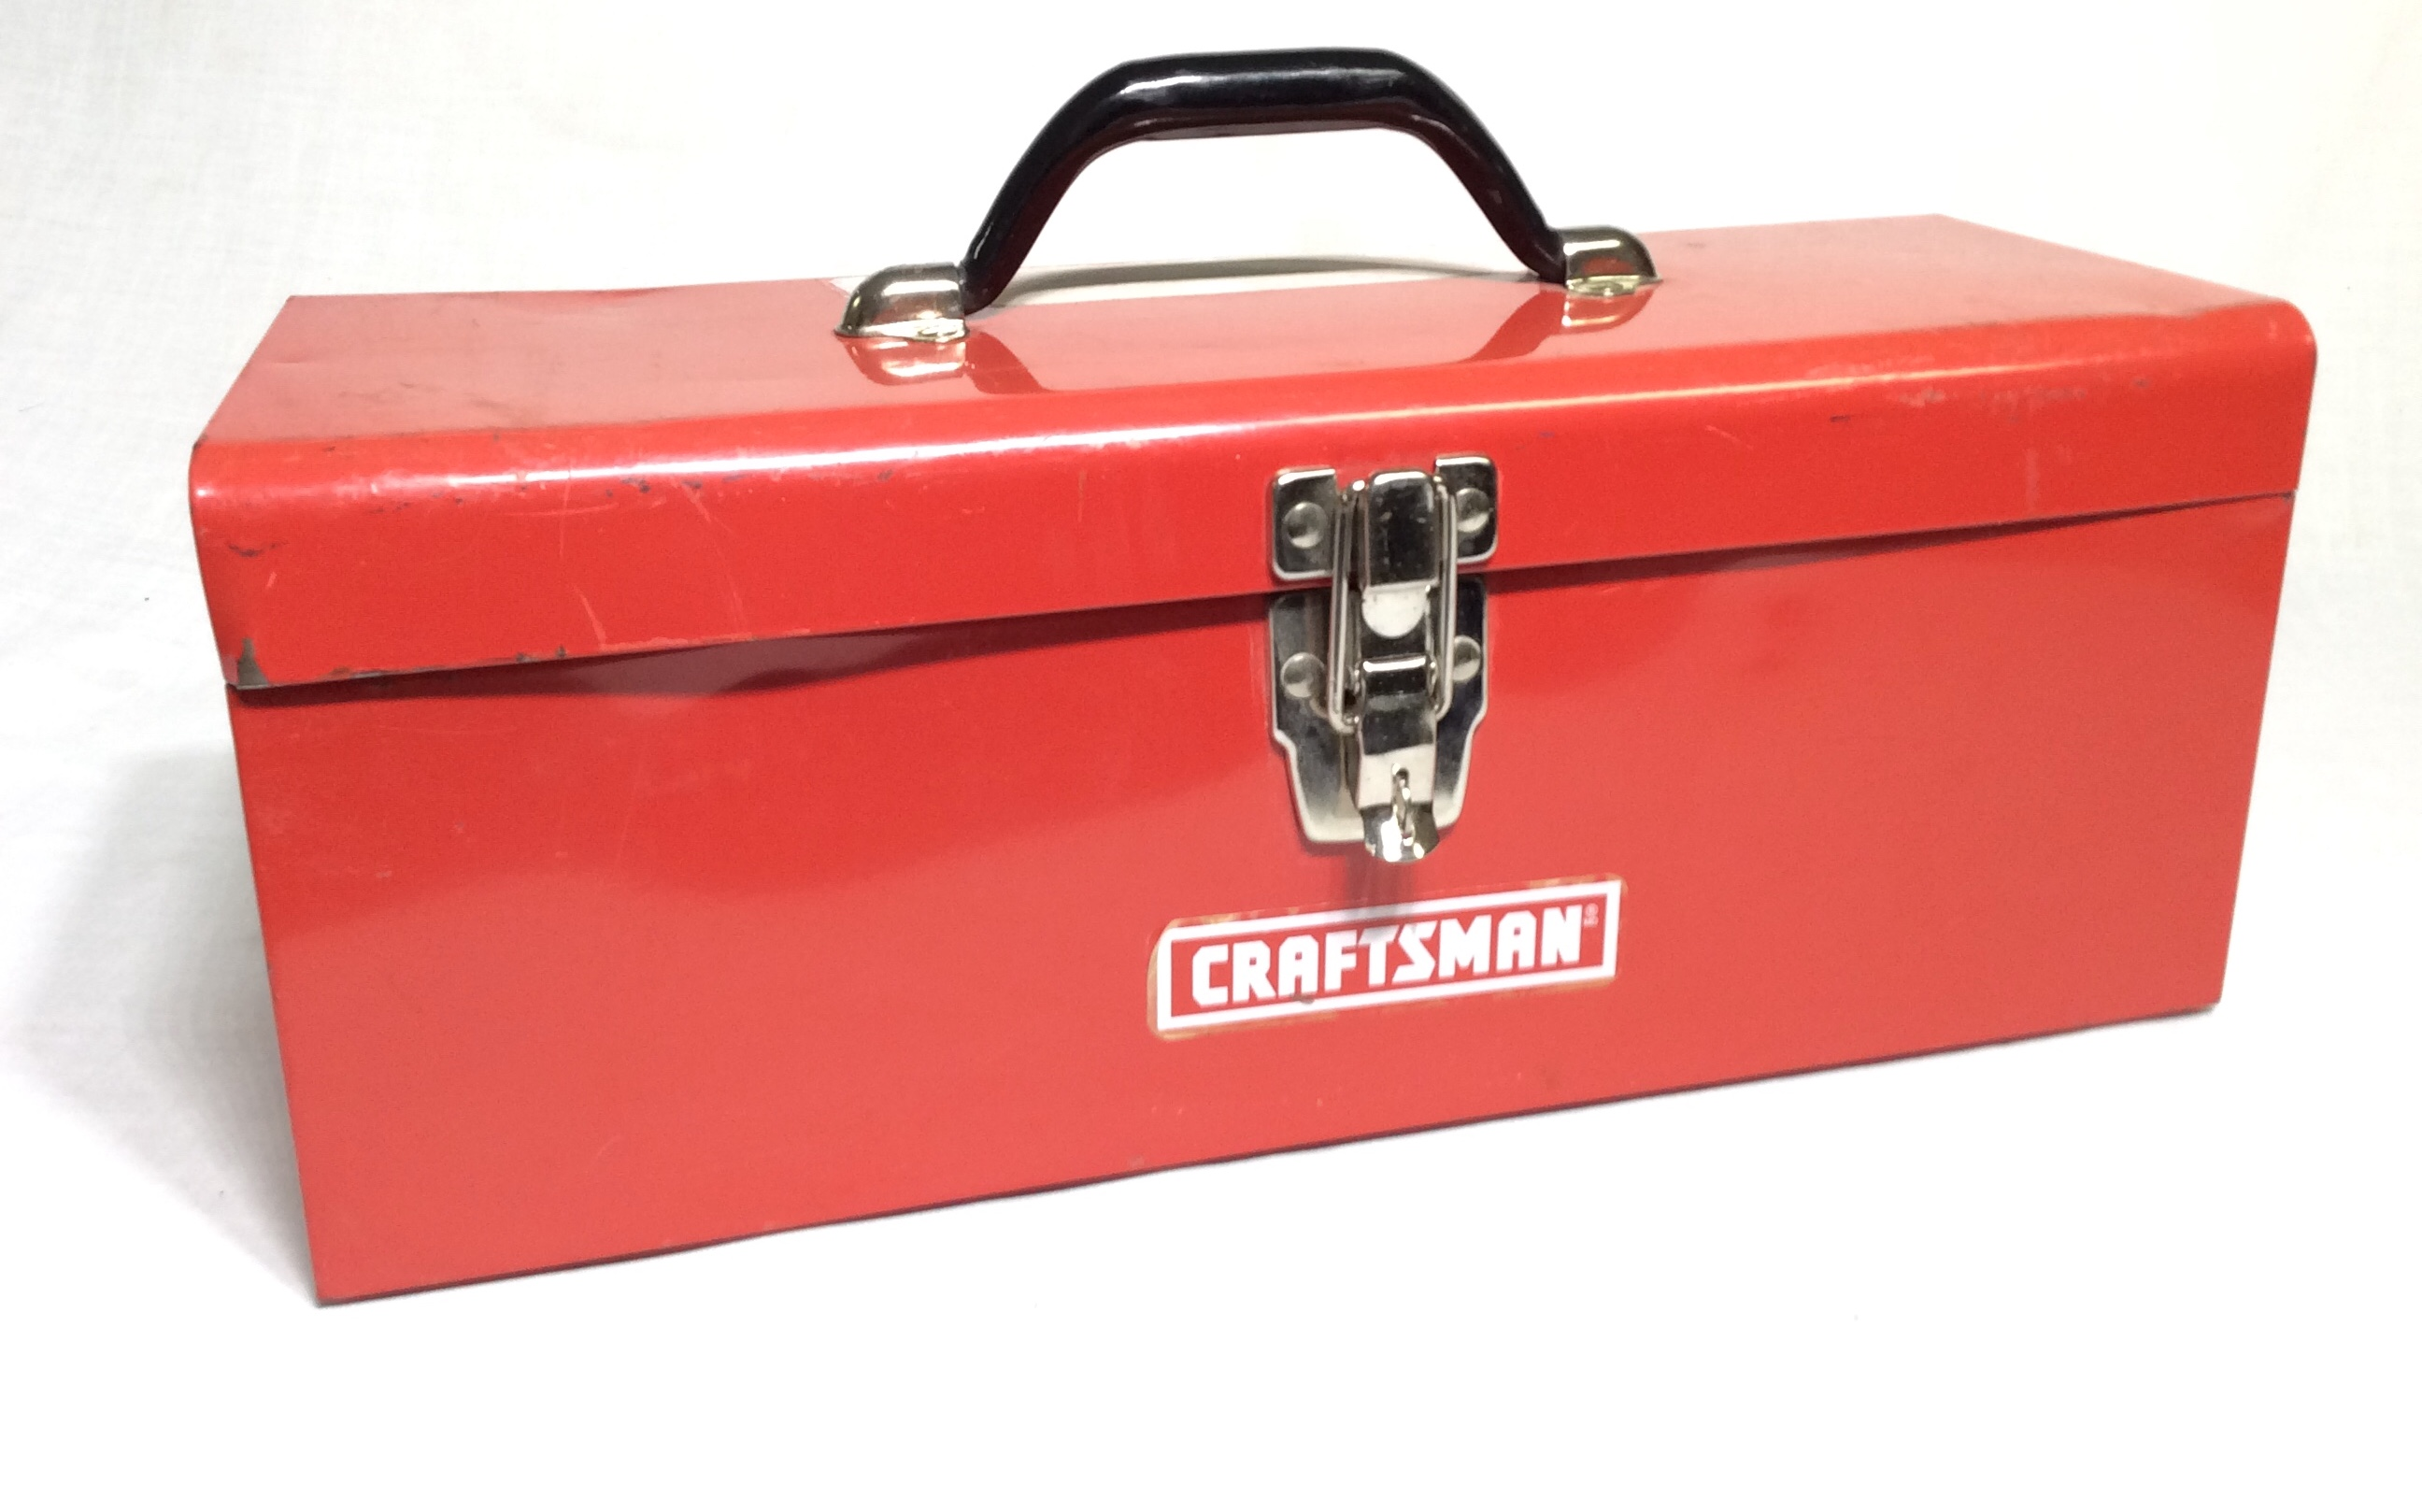 Craftsman Red Toolbox